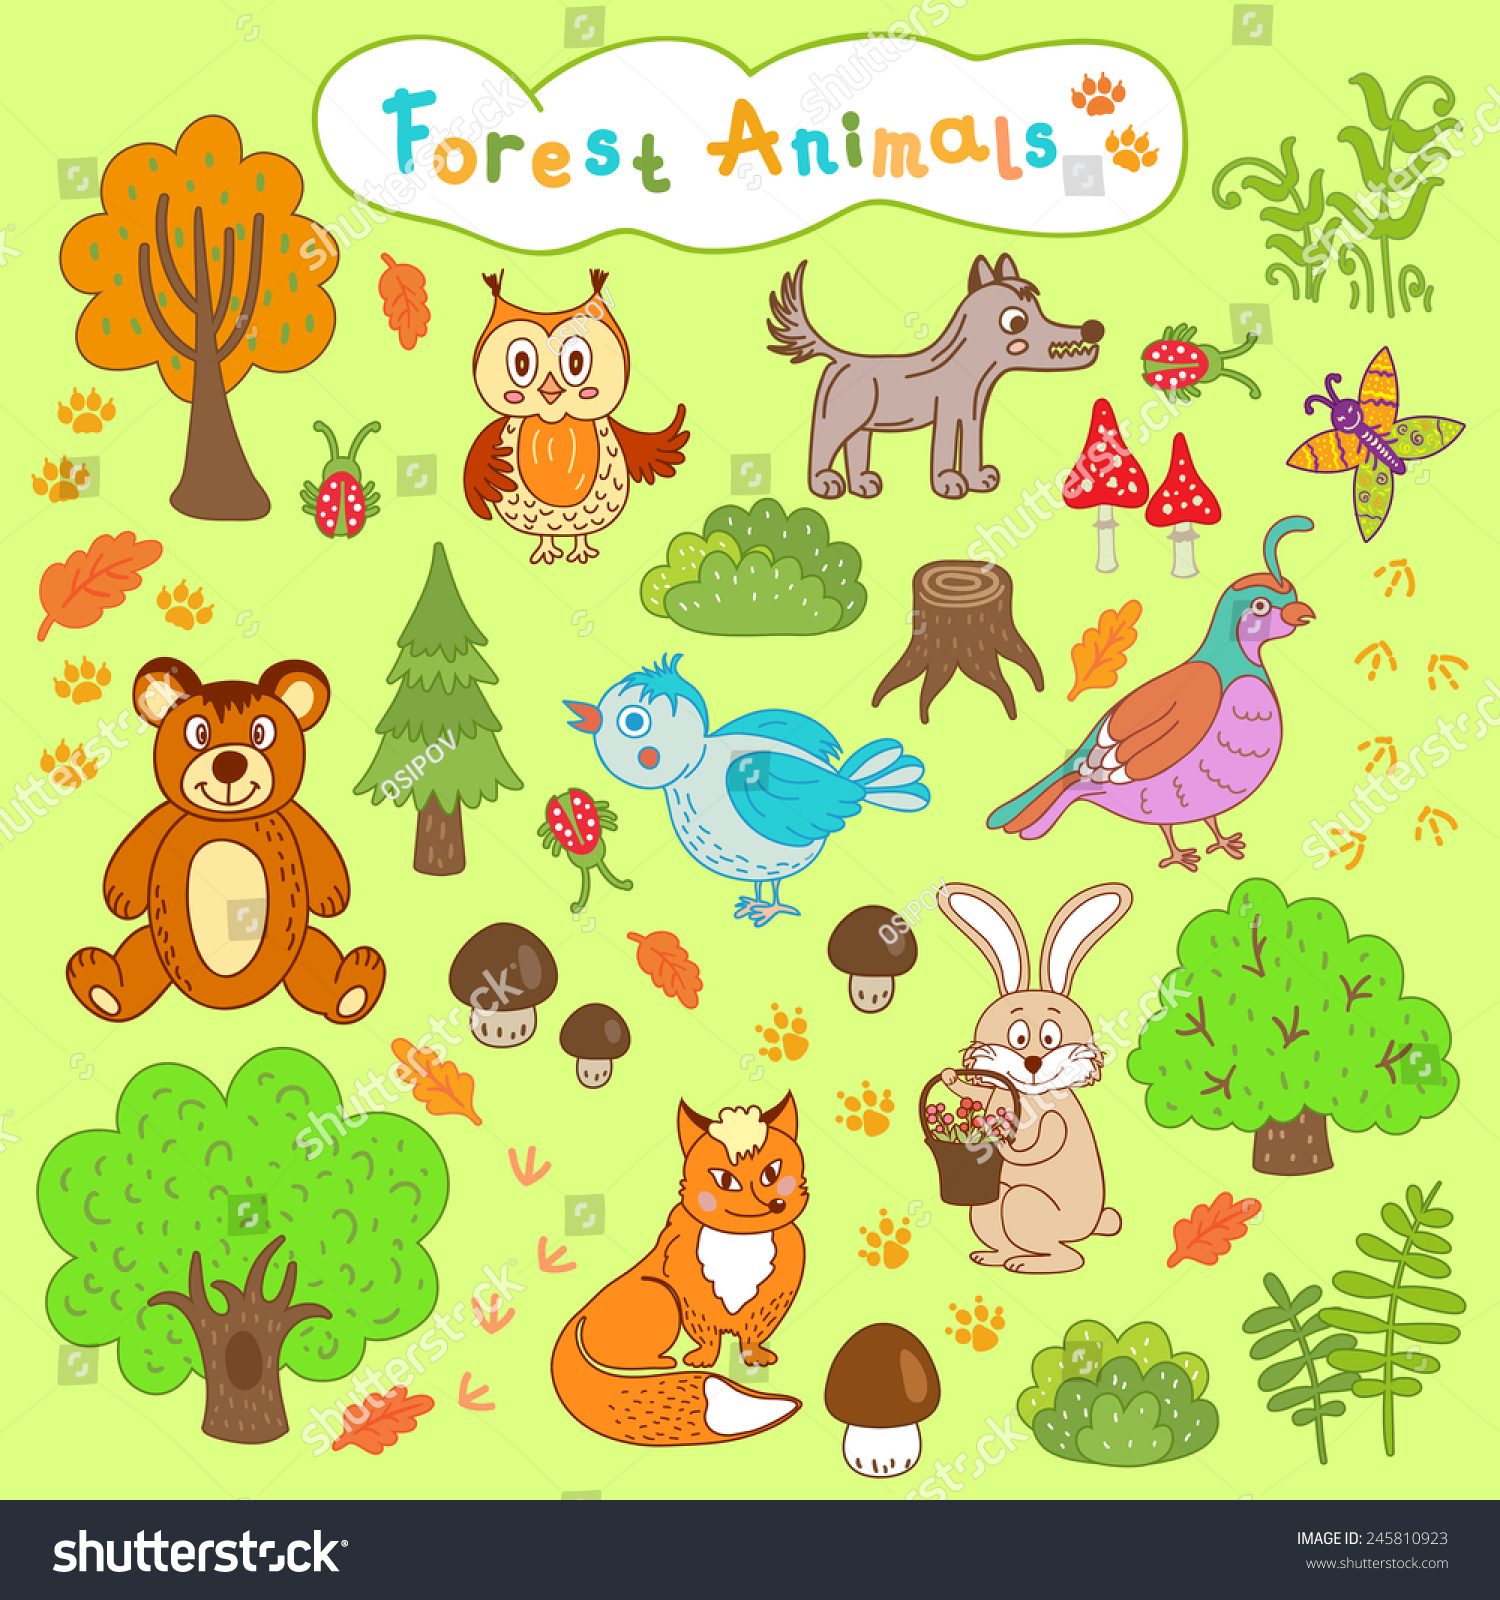 Uncategorized Childrens Animal Drawings childrens drawings forest animals cartoon set stock vector of cute wild animals